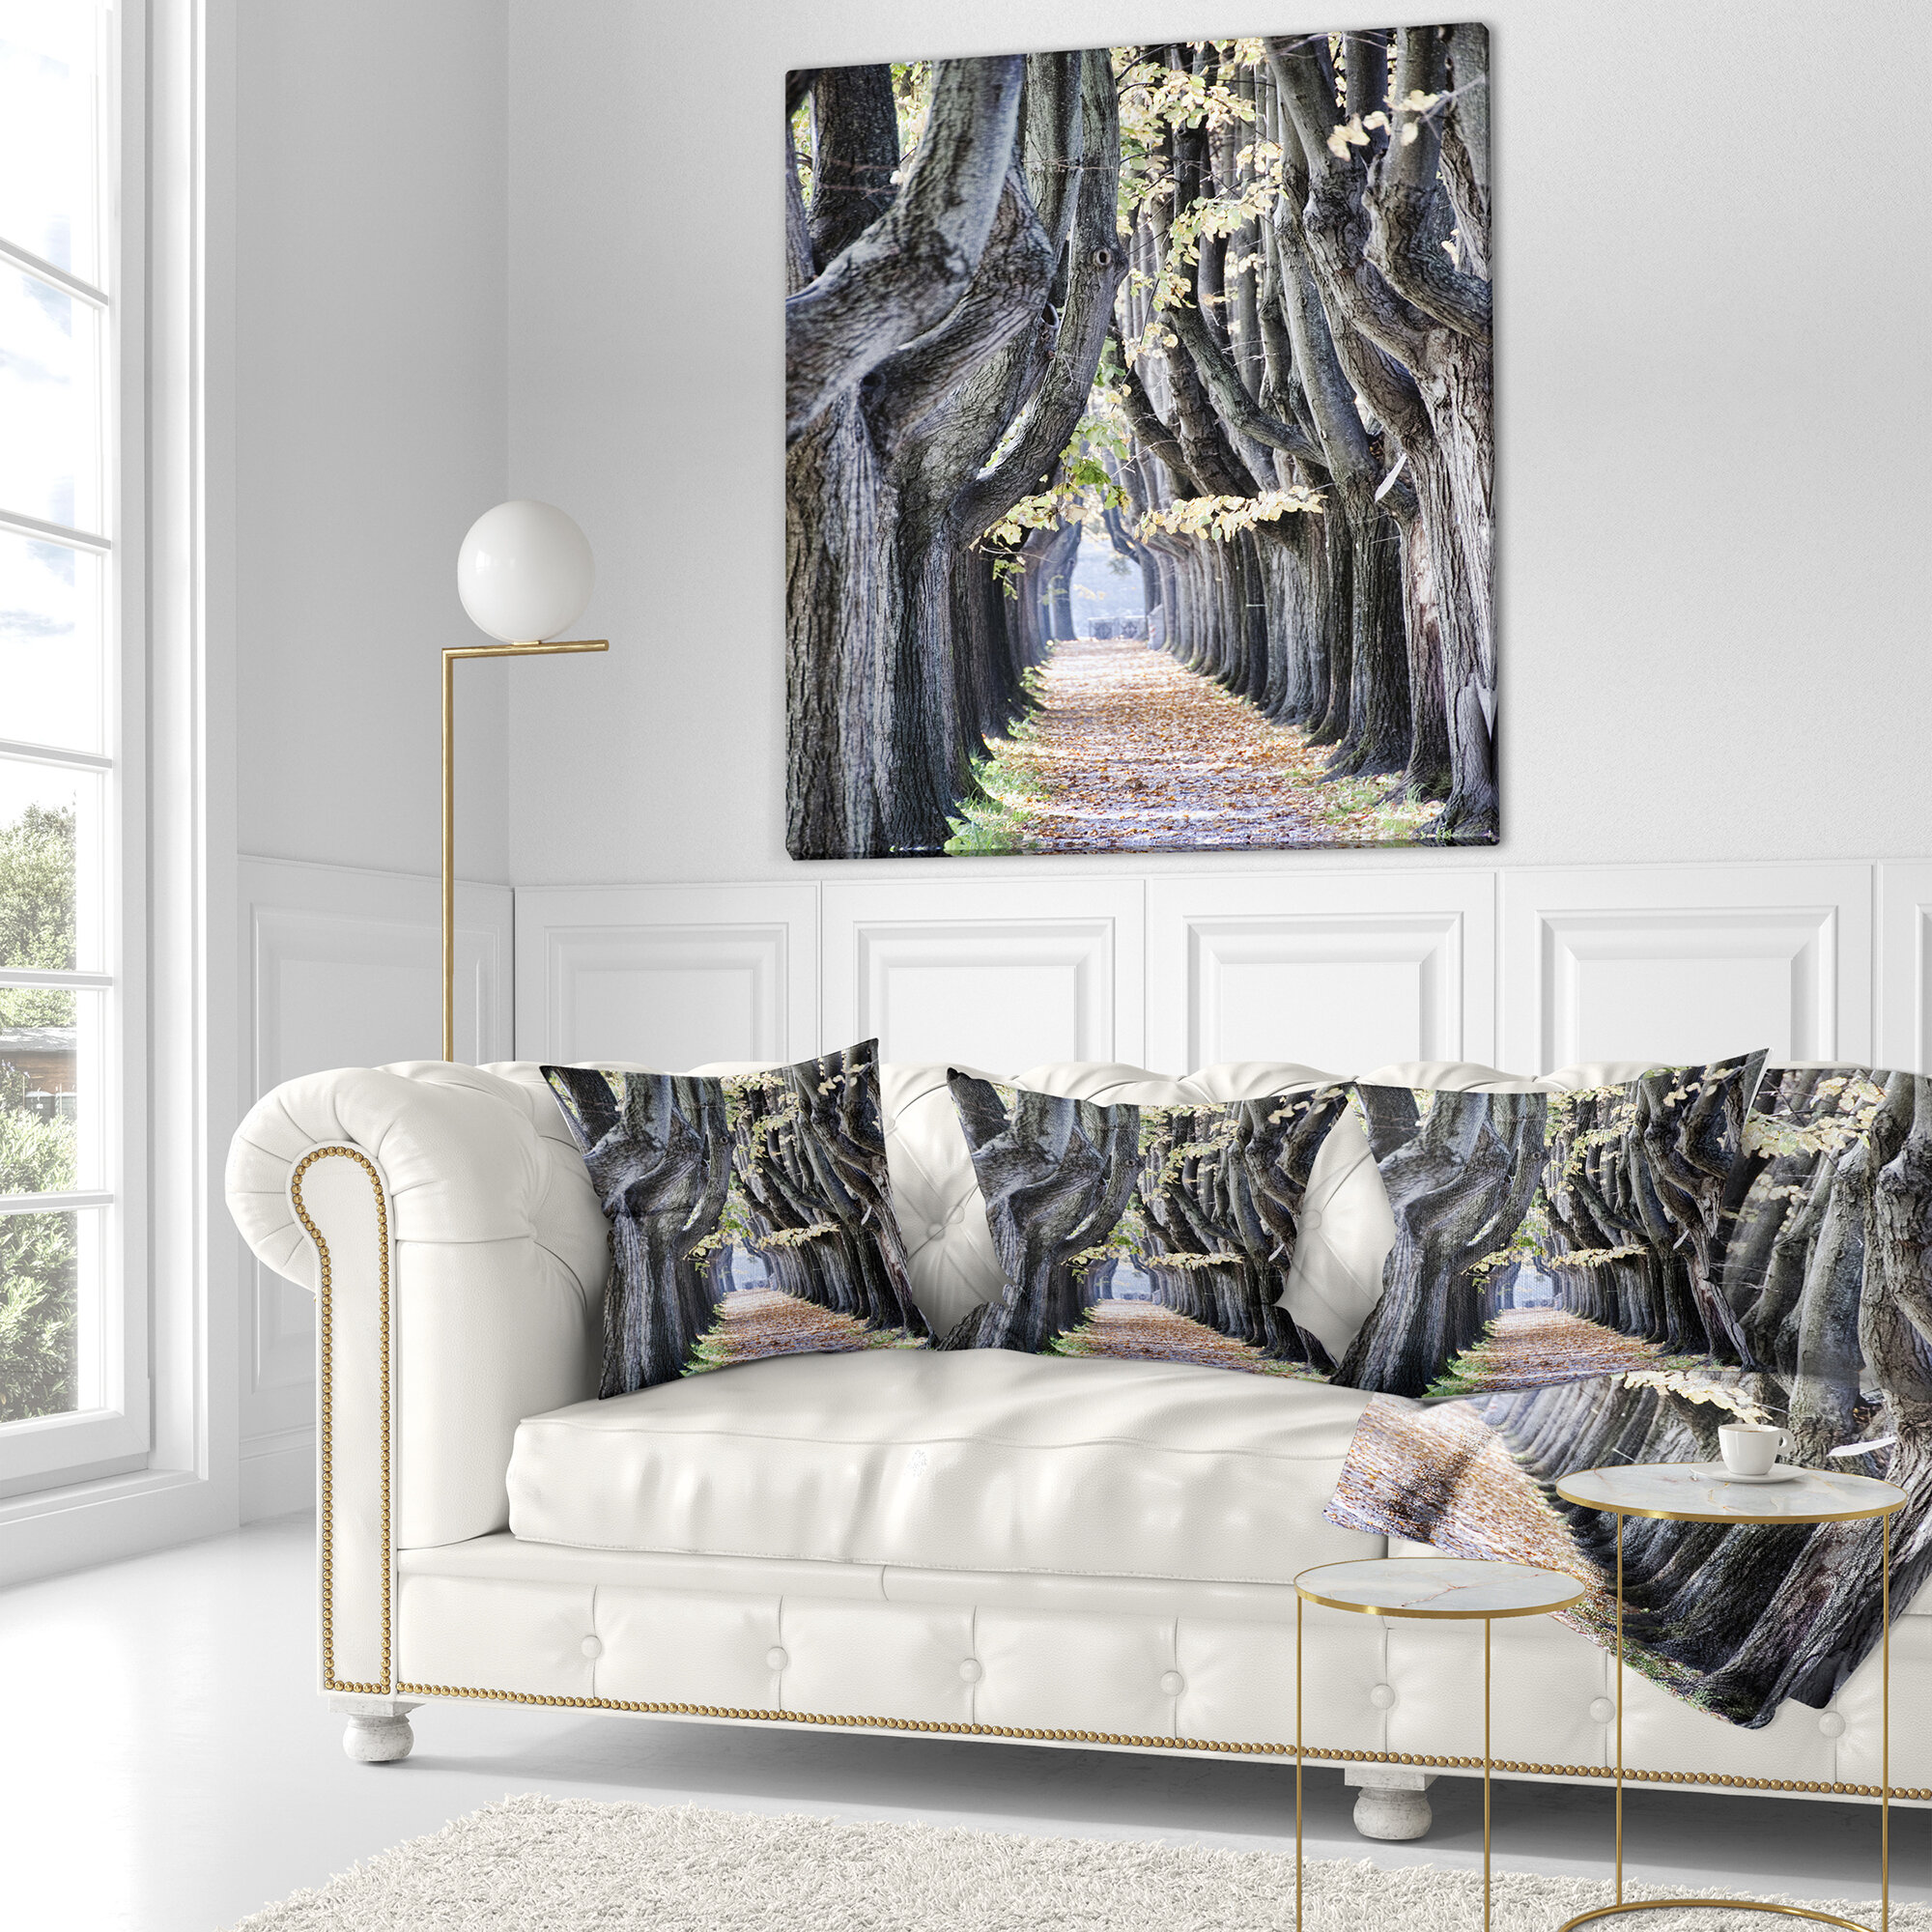 East Urban Home Landscape Photo Tree Outside Lucca Italy Lumbar Pillow Ebay